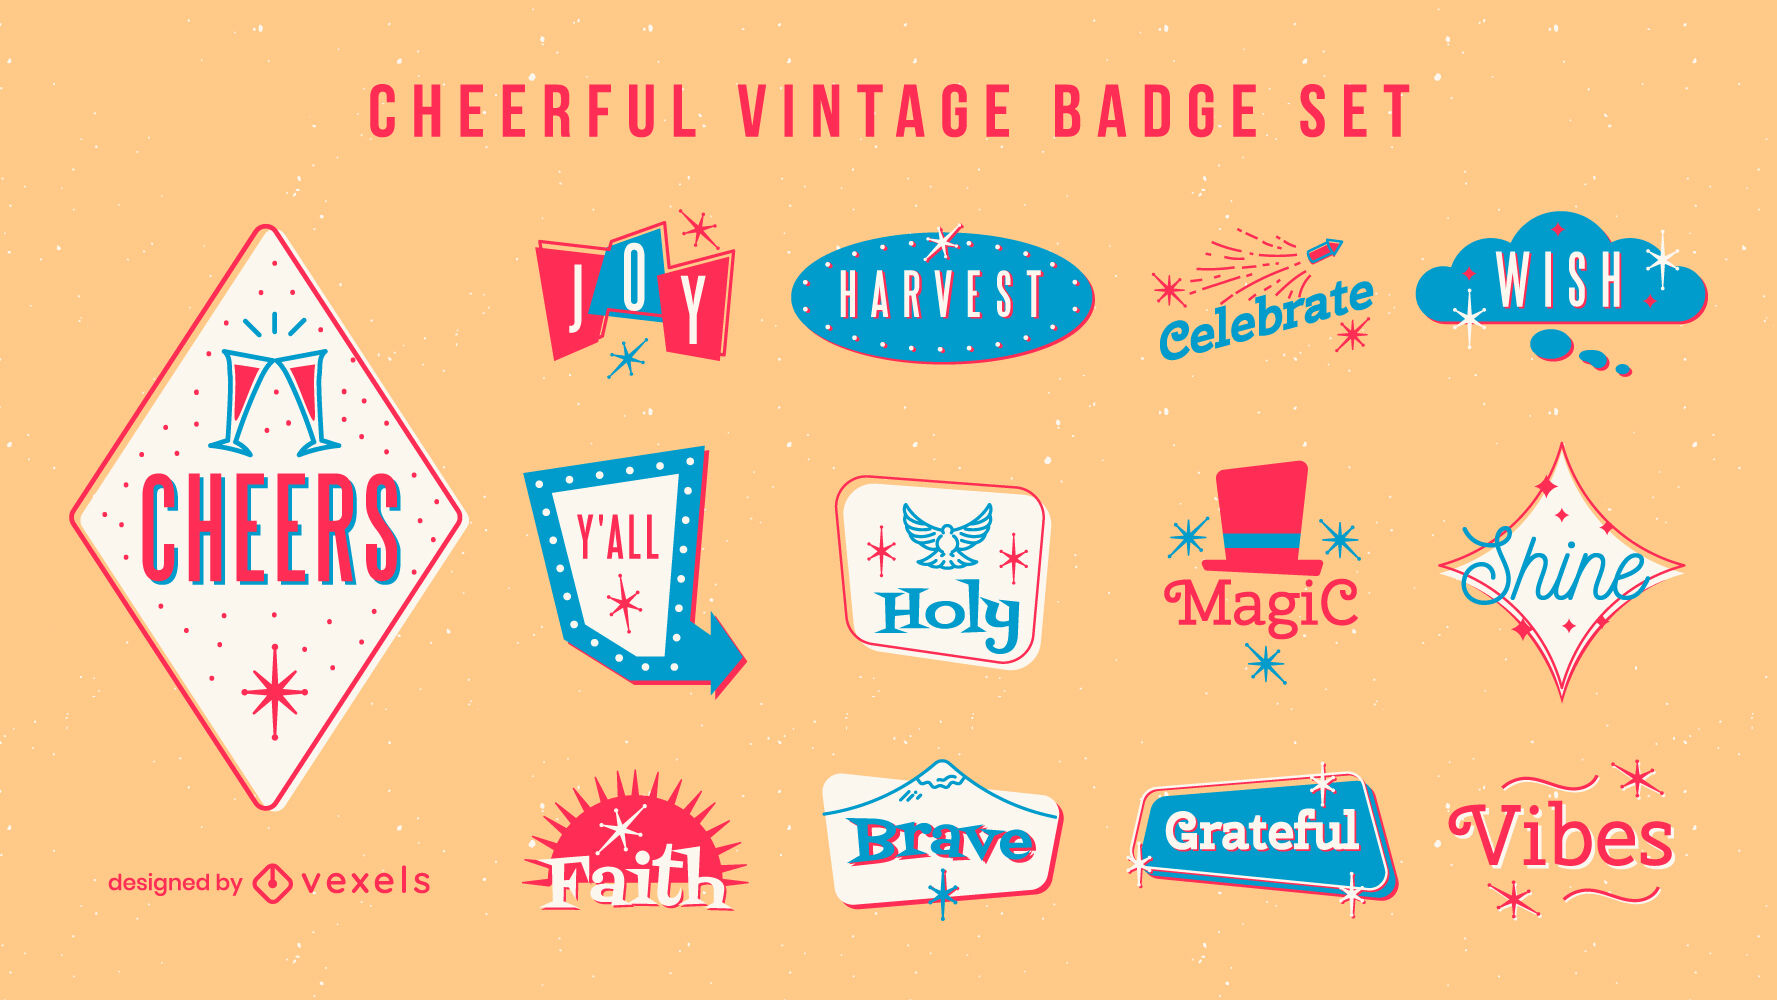 Cheerful vintage badges and quotes set